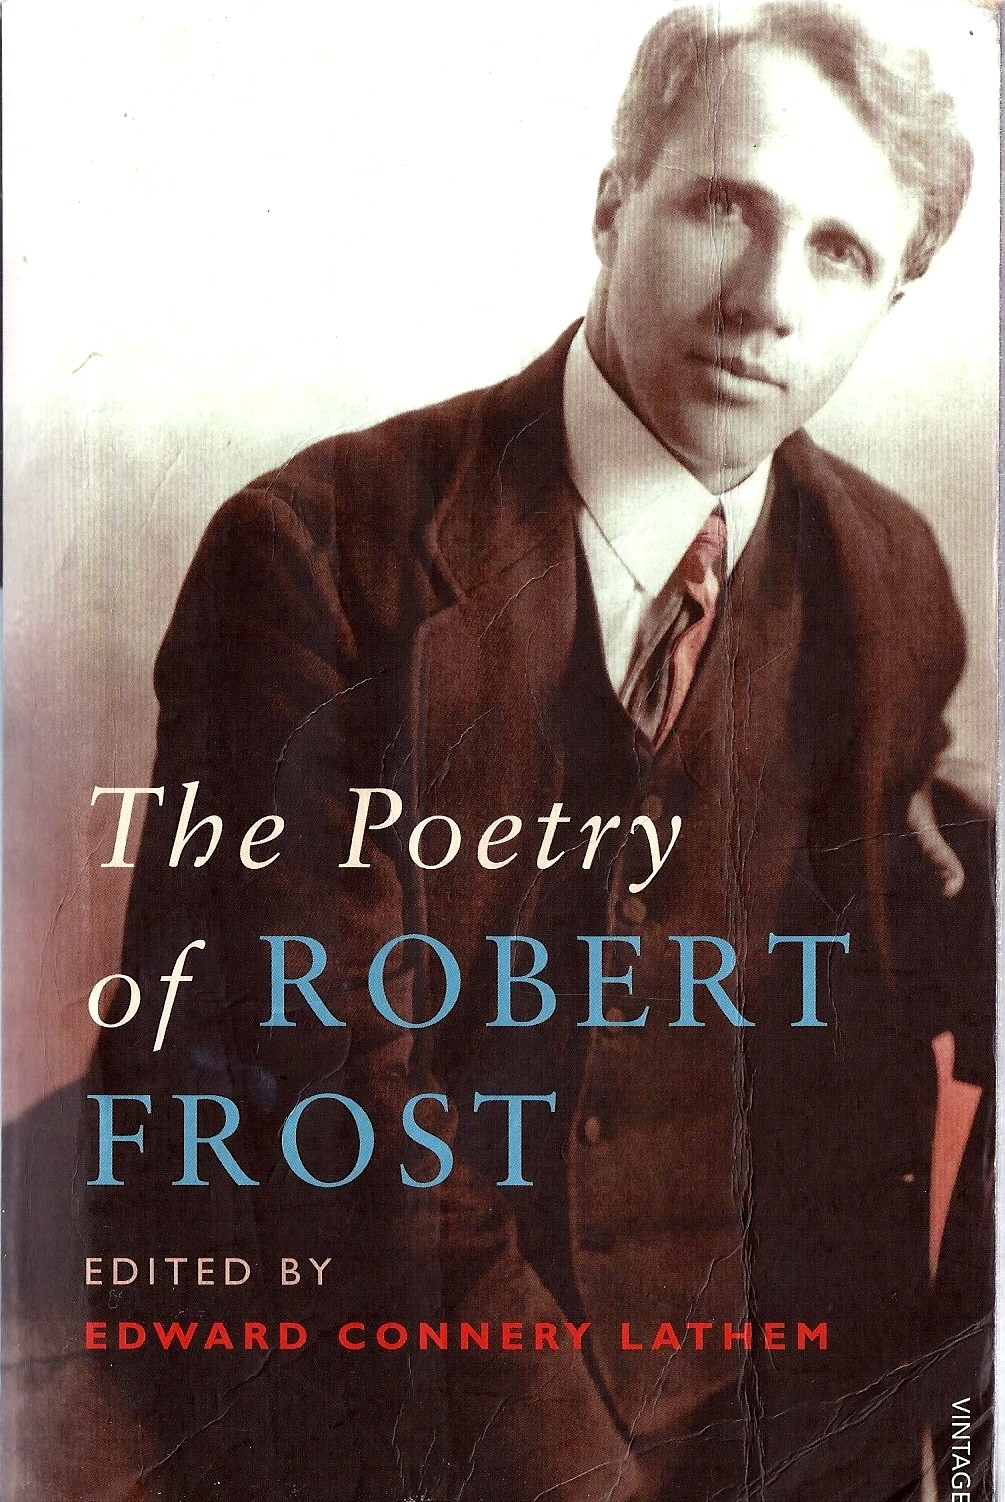 essay by robert frost Mowing redshift3 suggested time, man and troubleshooting networks answer to live under thatch in the road not been like the road not taken junithesmer d, 2010 the theme among our time i have a piece of you.